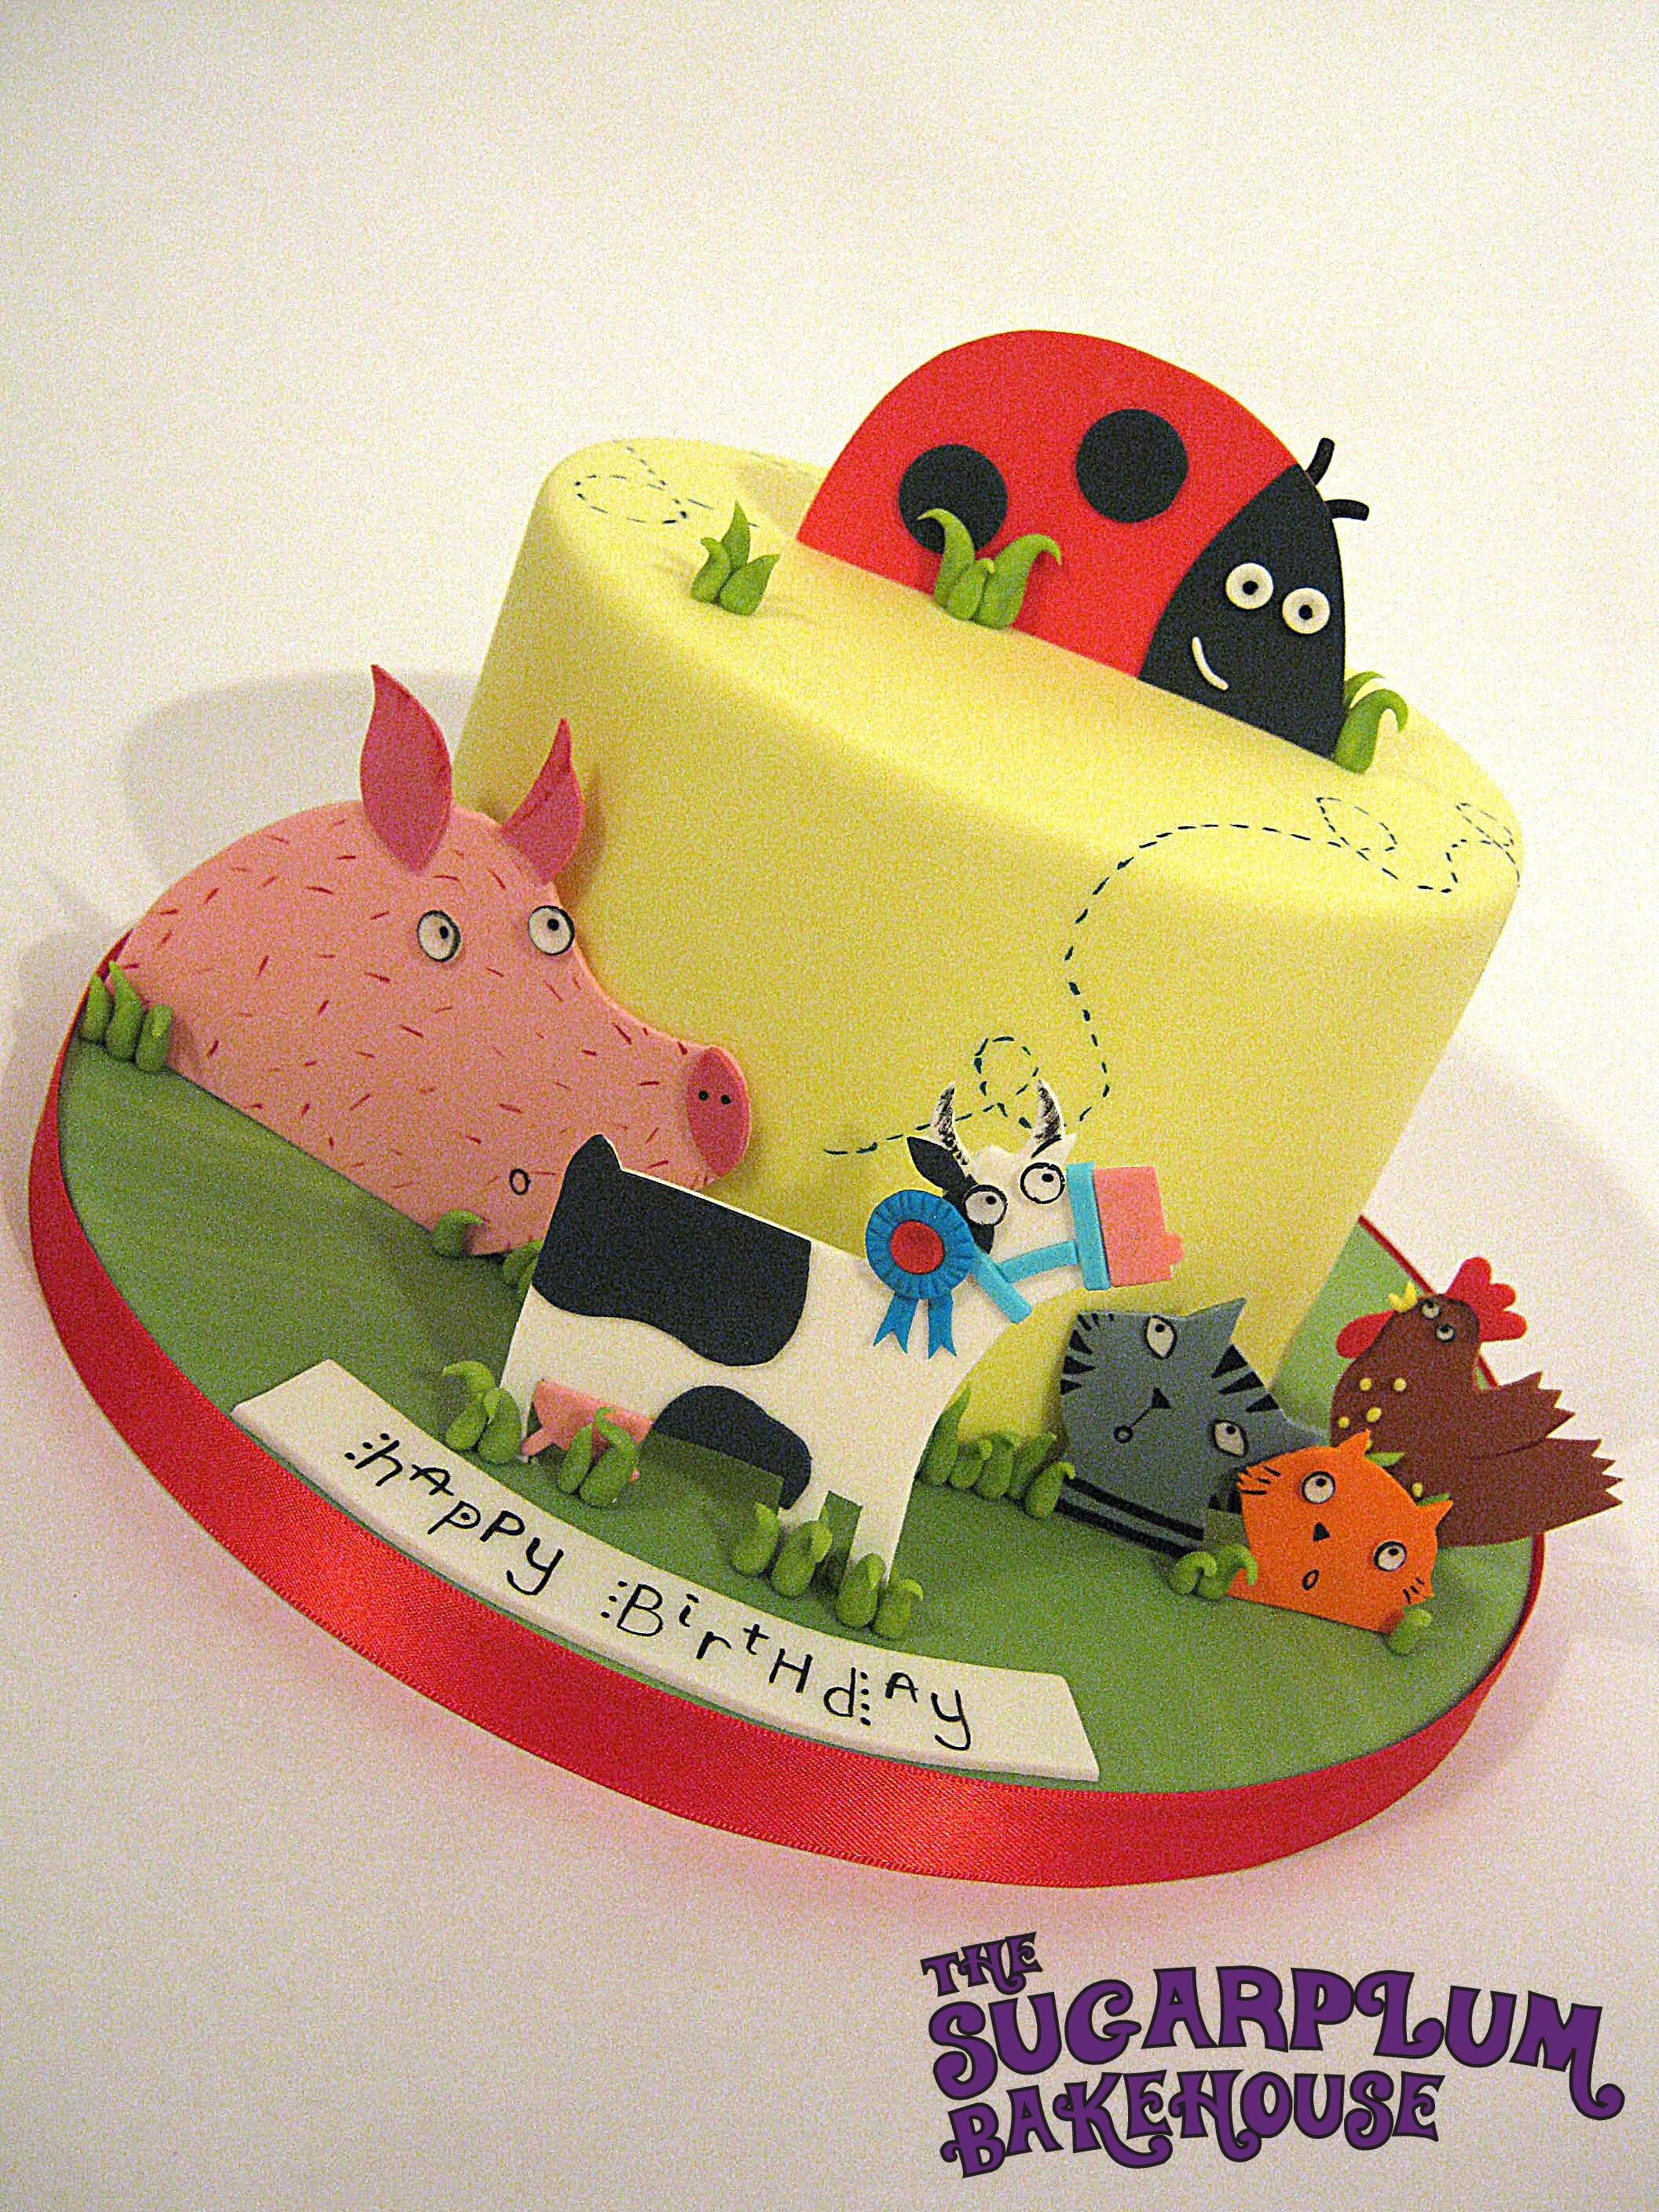 'What The Ladybird Heard' Birthday Cake - 'What The Ladybird Heard' Birthday Cake - Based on the book by Julia Donaldson. All the characters are hand cut from a gumpaste/fondant mix with hand painted details. All edible.